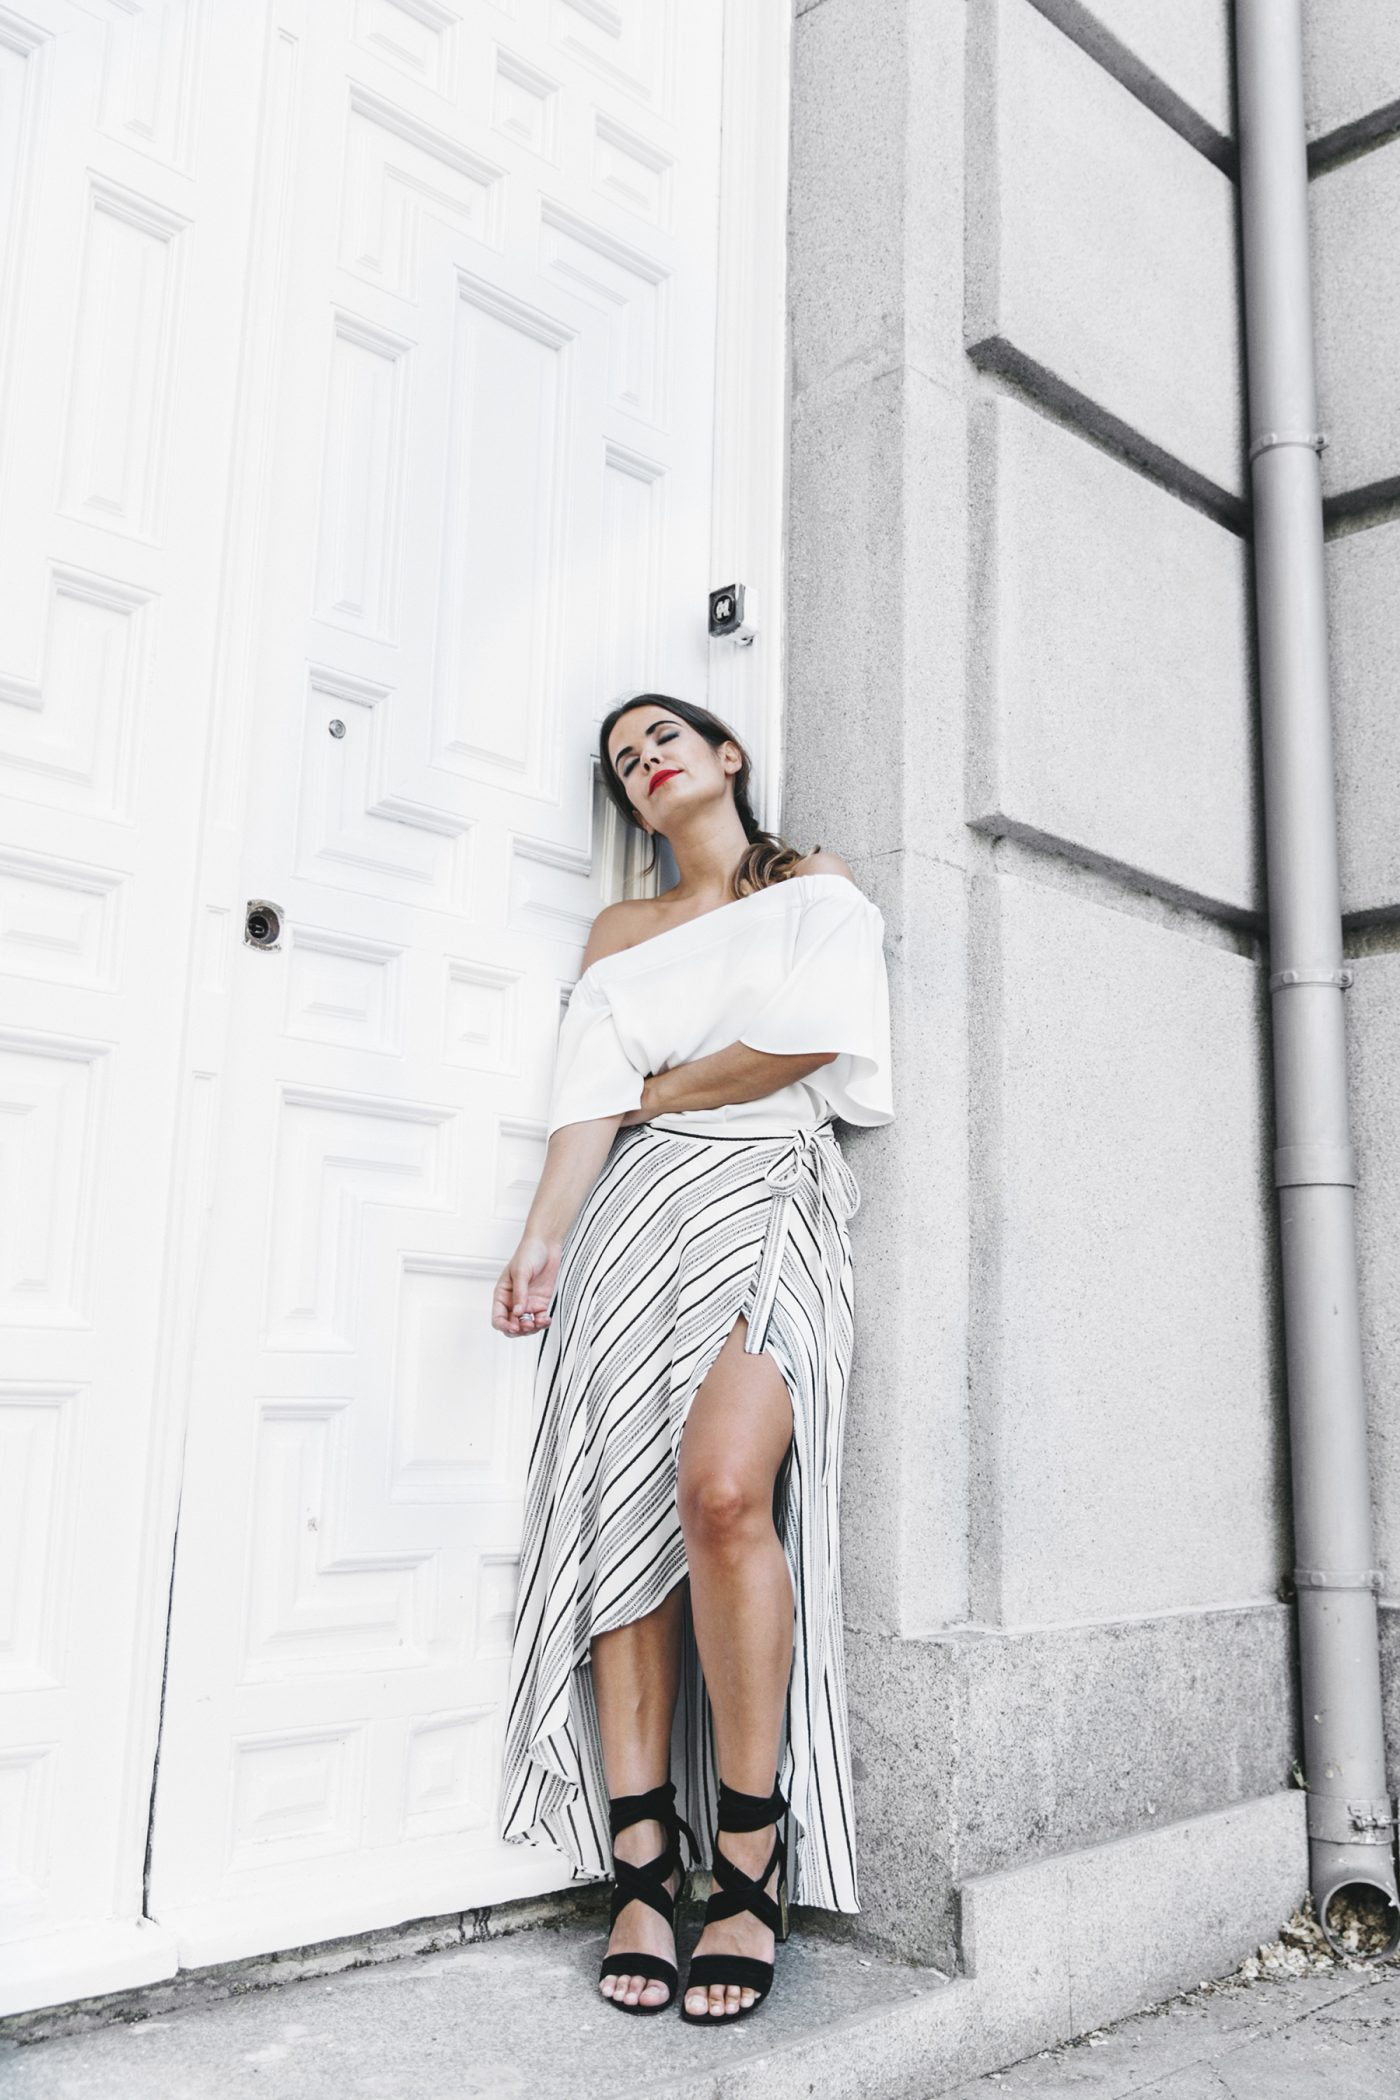 River_Island-El_Imparcial-Striped_SKirt-Off_Shoulders_Top-Lace_Up_Sandals-CHanel_Vintage_Bag-58